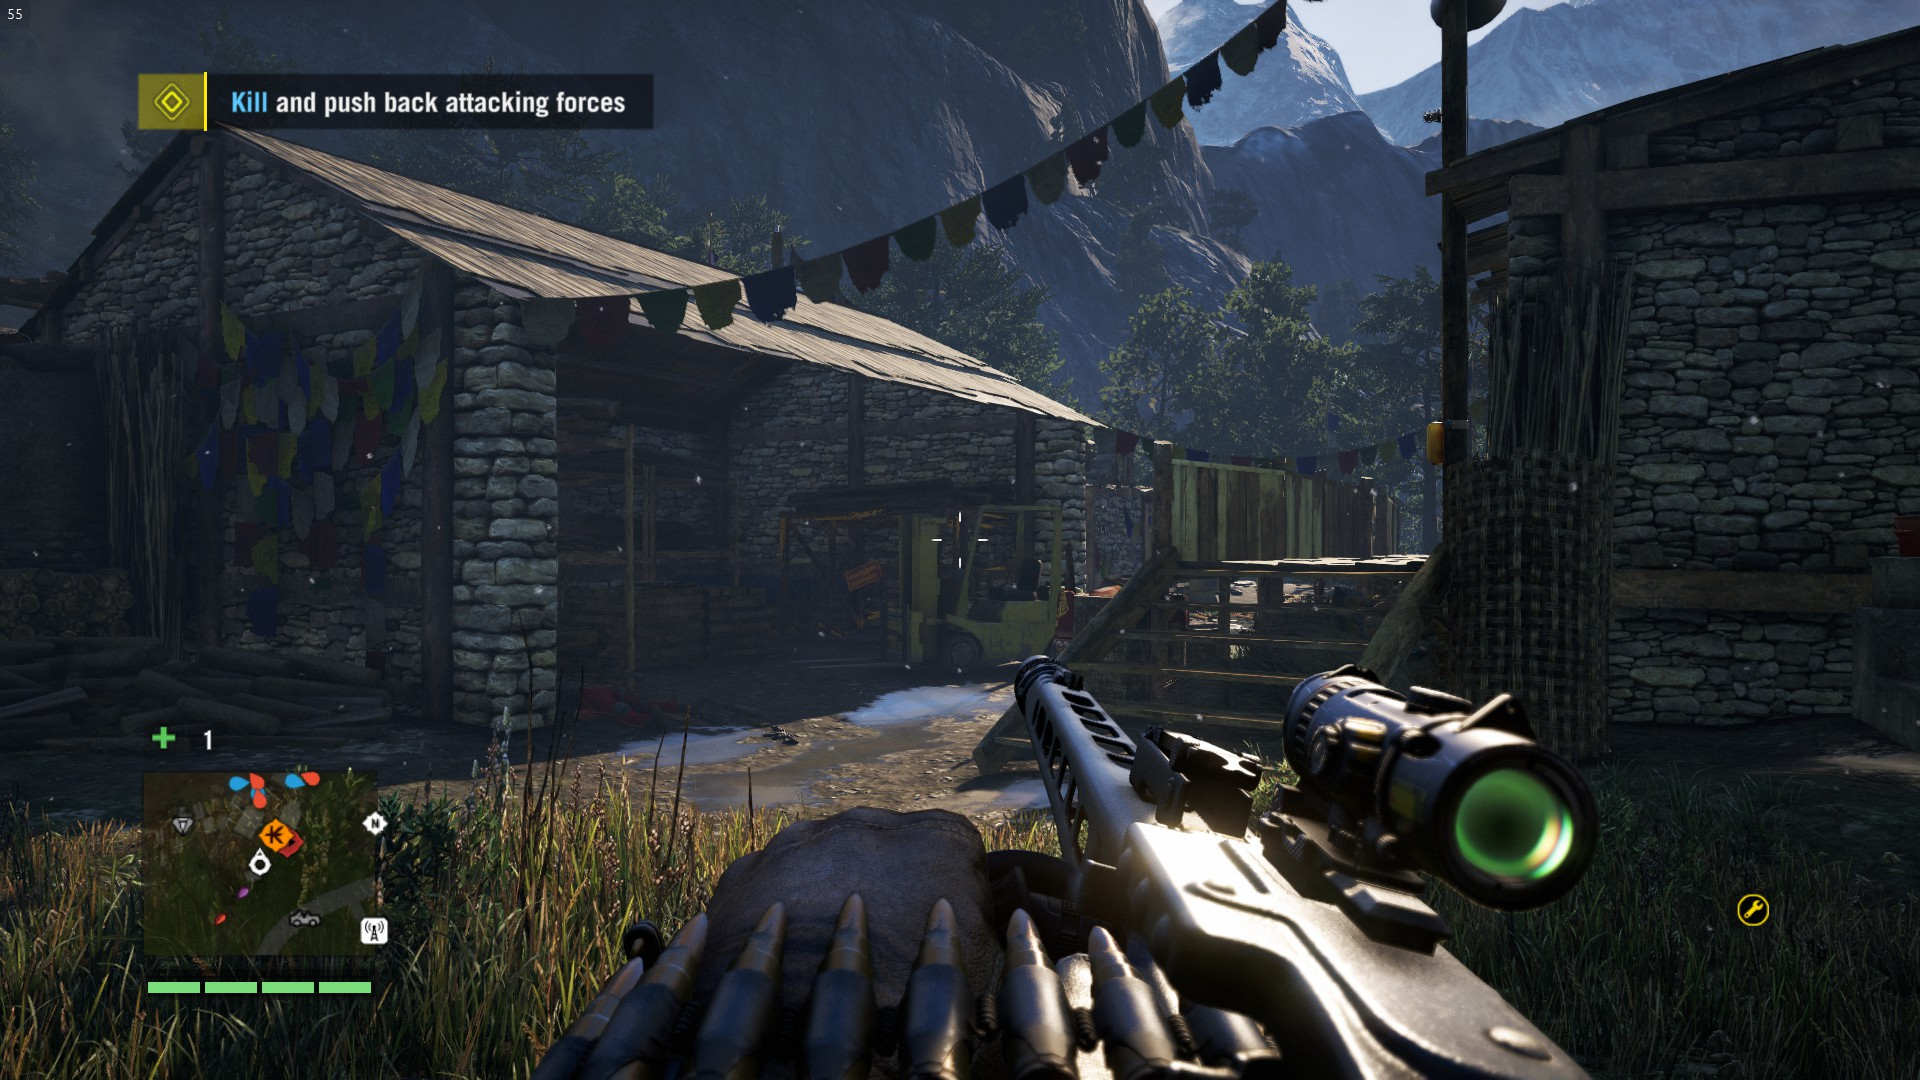 Far Cry 4: A Lesson on Patience and Applicability in